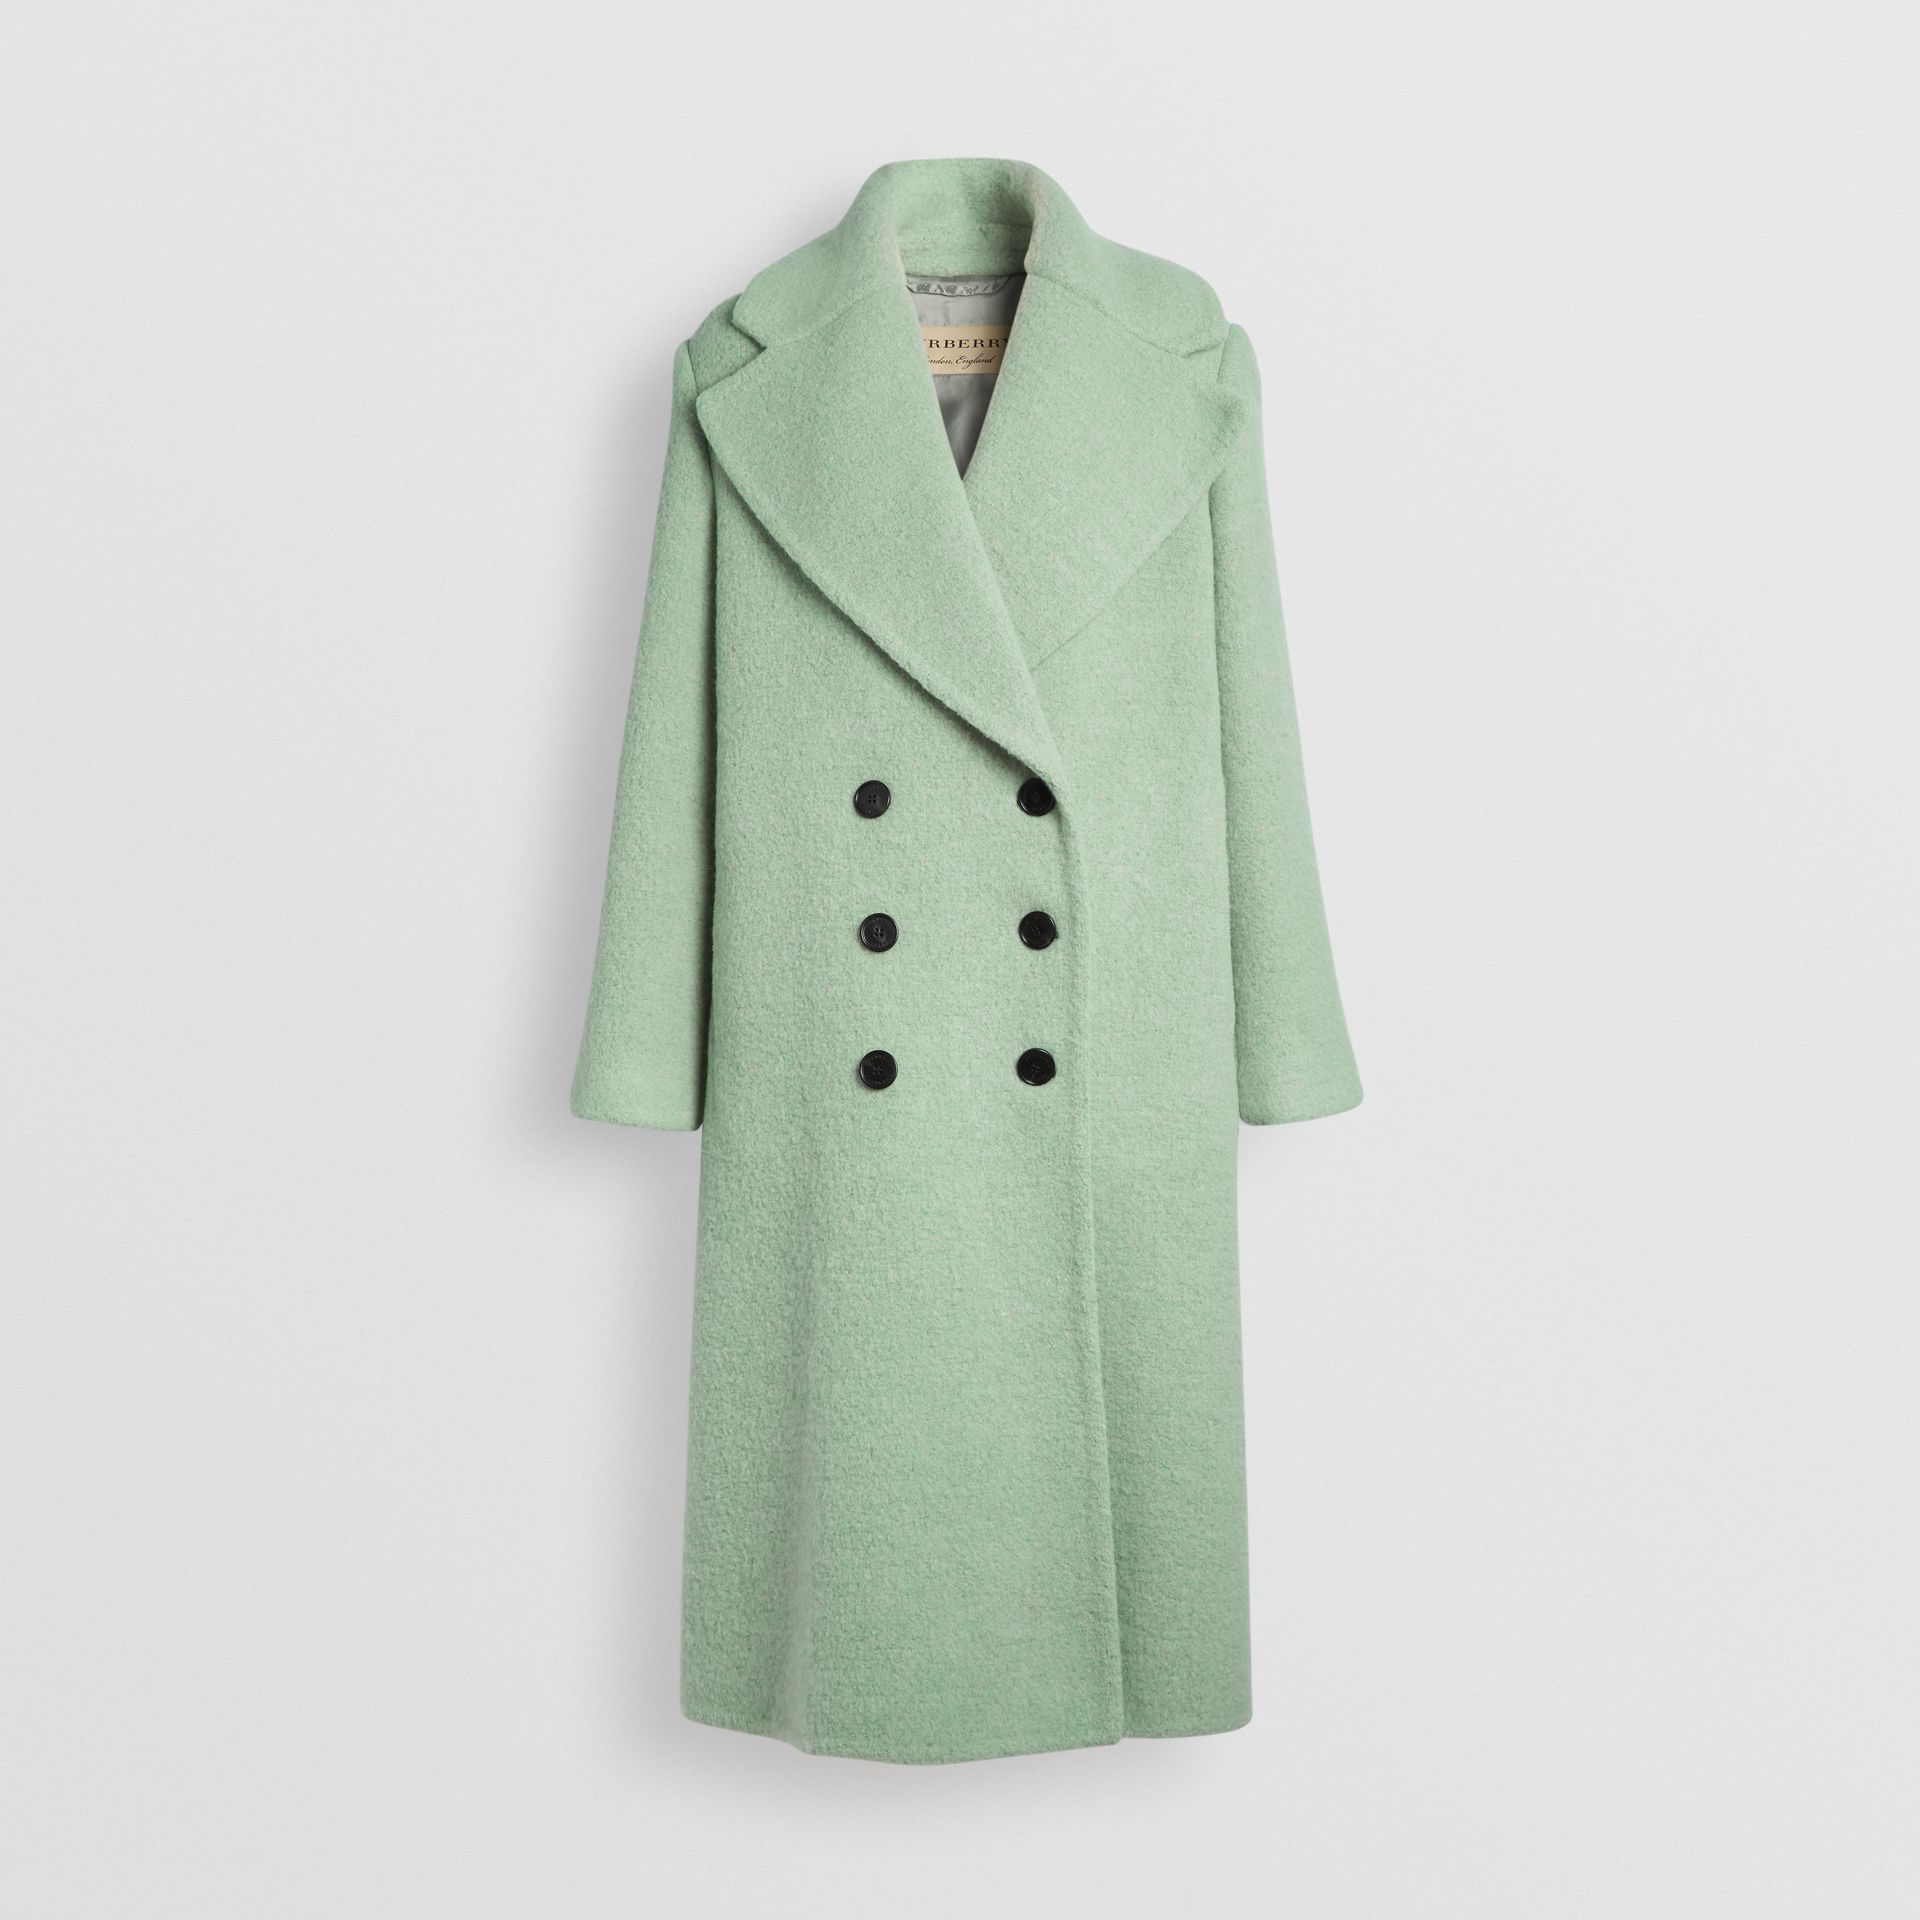 Double-faced Wool Alpaca Blend Oversized Coat in Celadon Green - Women | Burberry United Kingdom - gallery image 3